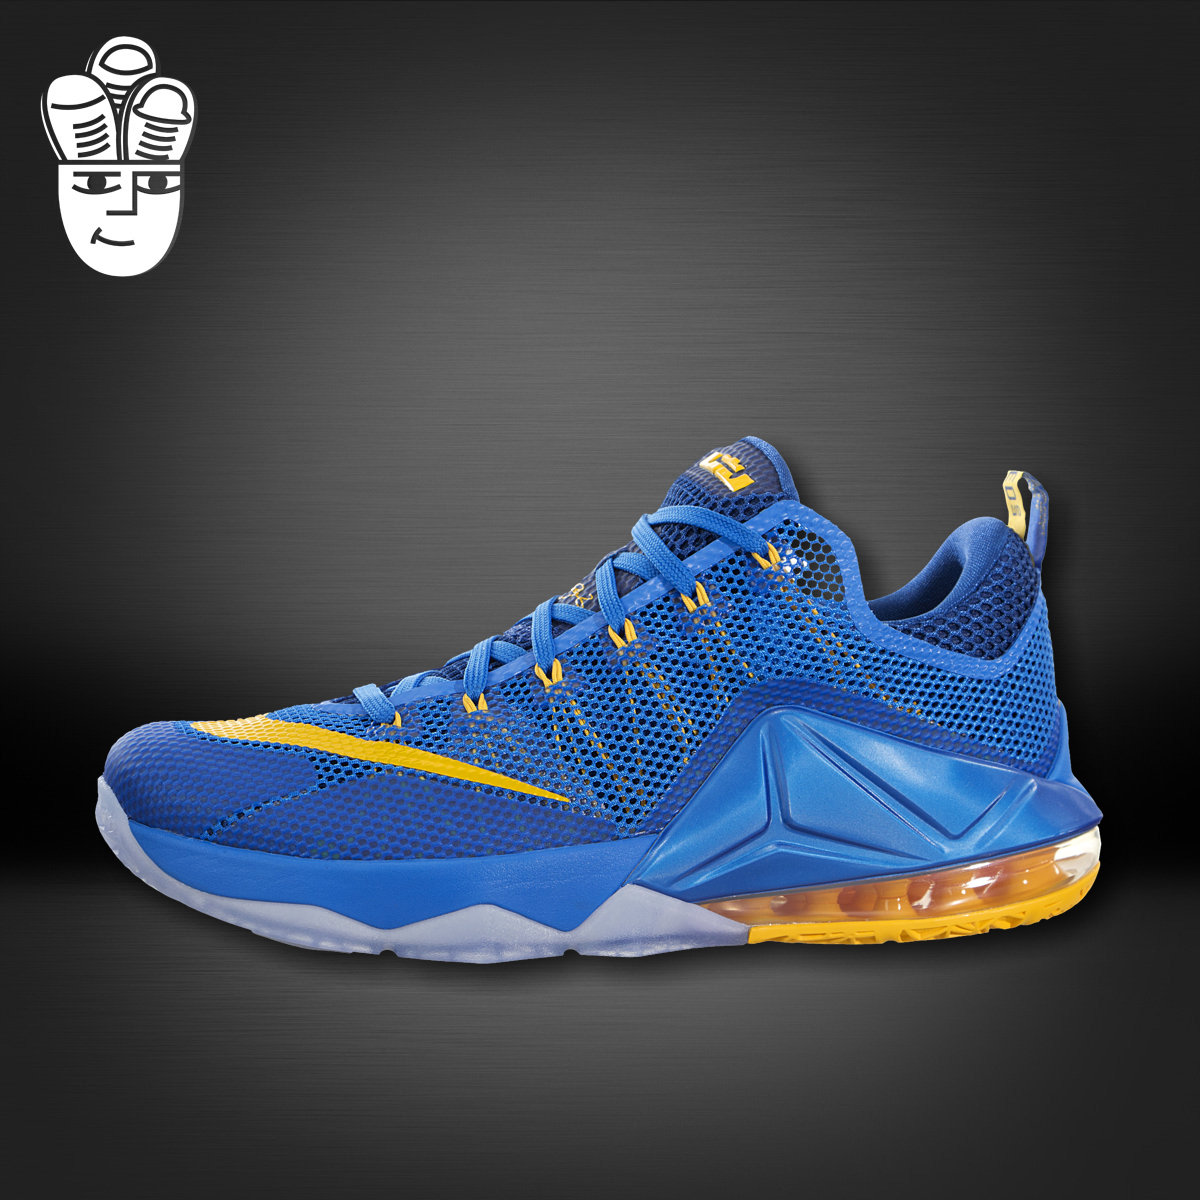 Nike lebron xii low nike lebron james 12 generations men's basketball shoes to help low sports shoes cushioning shoes